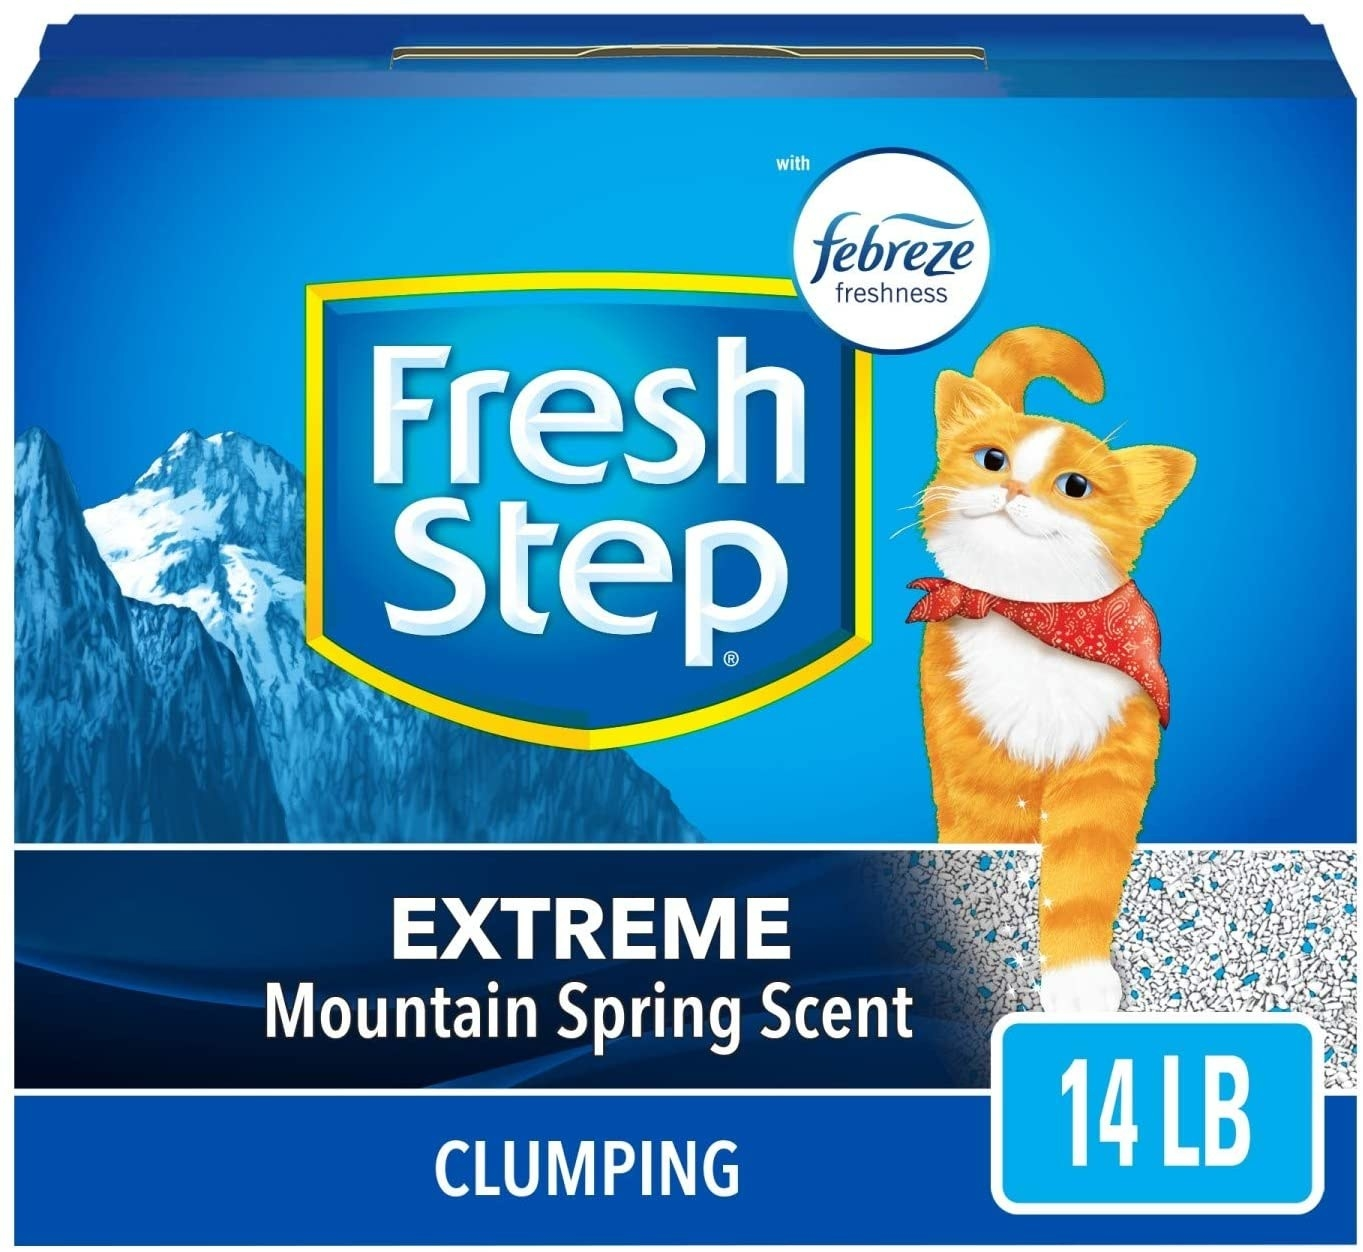 A box of mountain spring scented litter